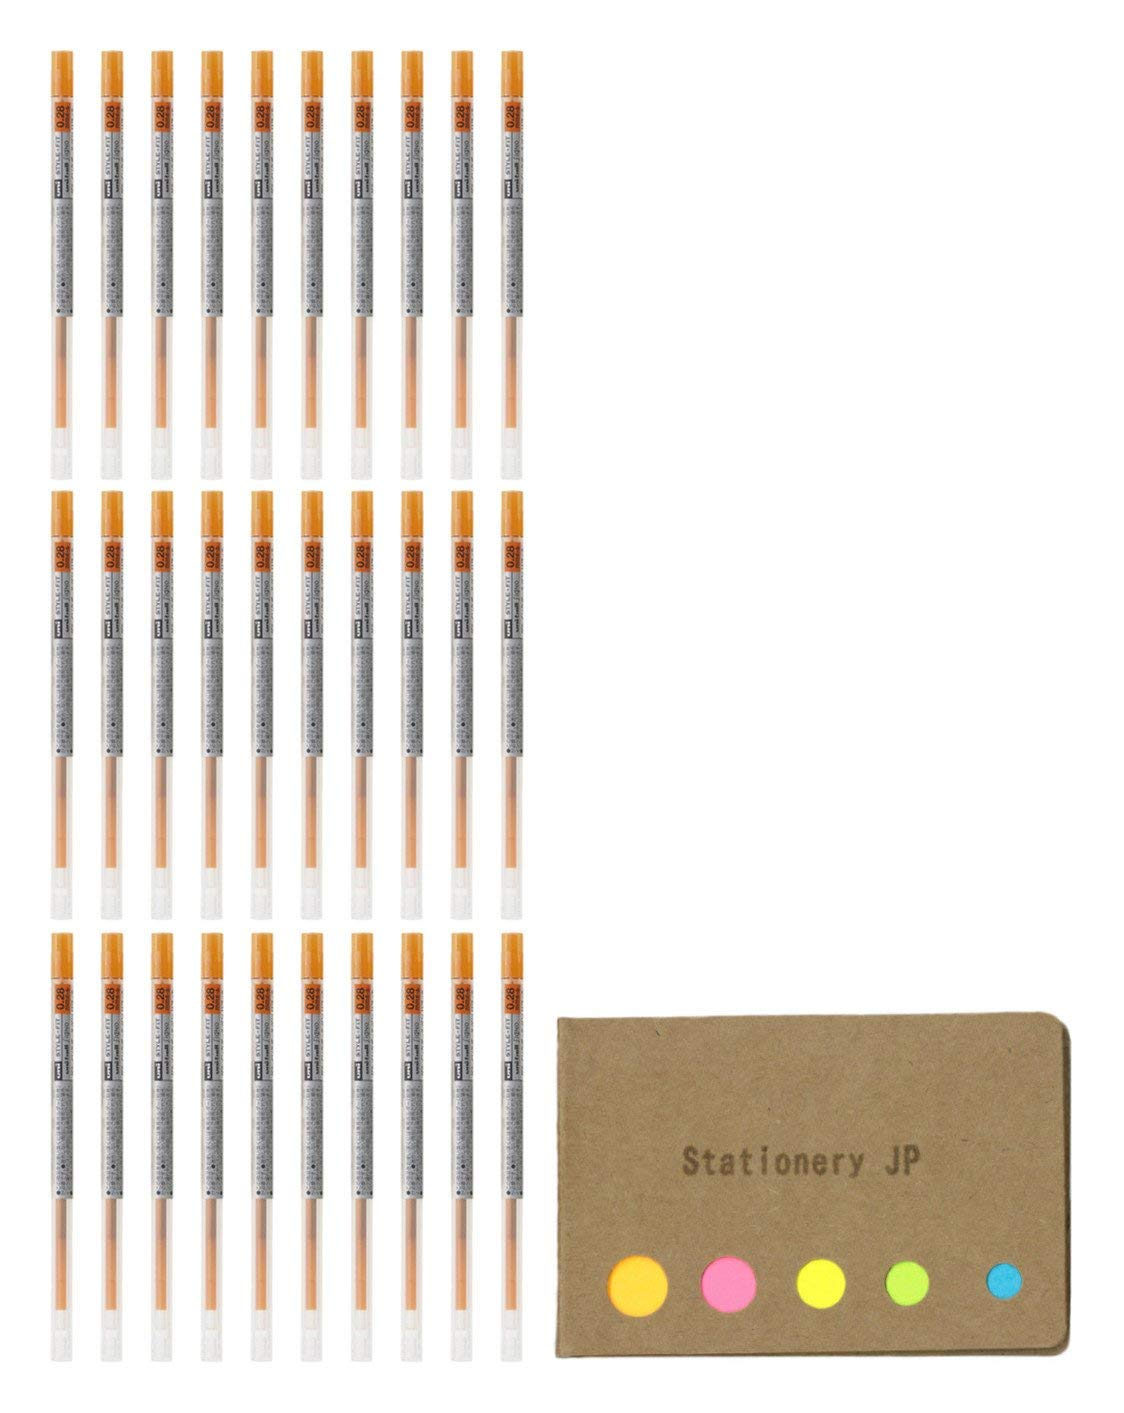 Uni-ball Signo Gel Ink Refills for Uni Style Fit Gel Multi Pen 0.28mm Orange Ink, 30-pack, Sticky Notes Value Set